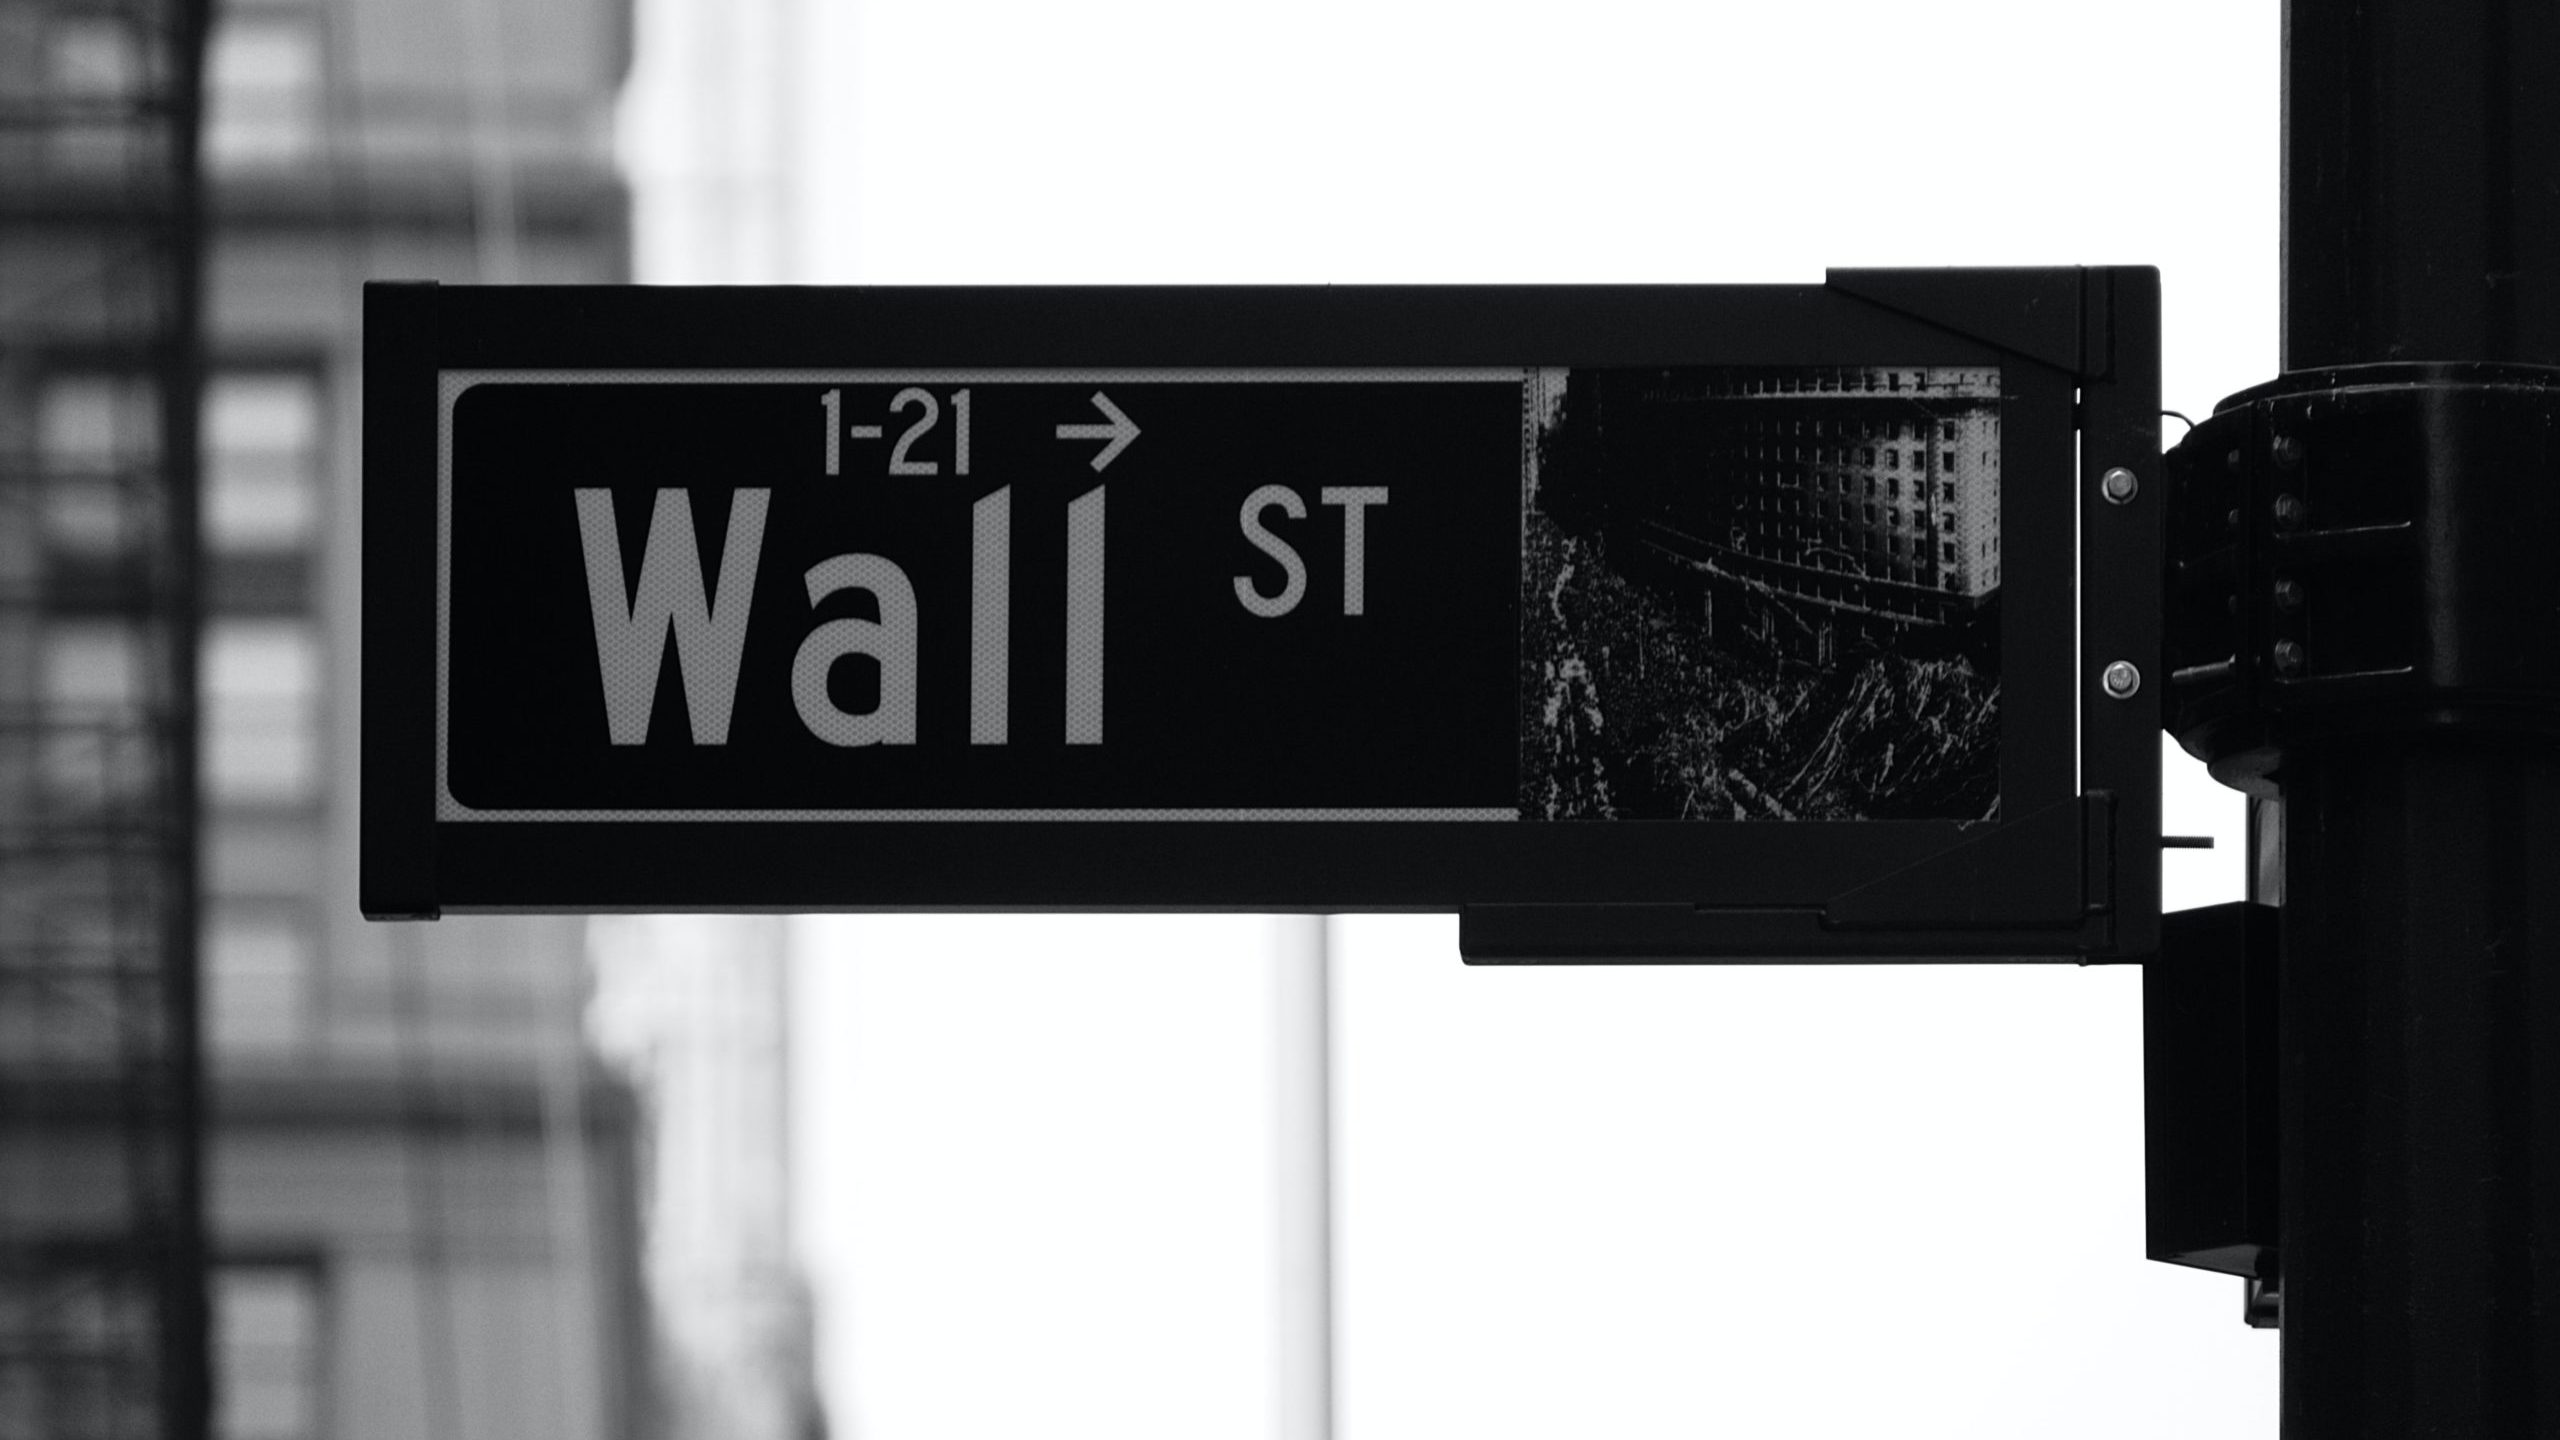 Wall Street Bonuses Are Shrinking This Year